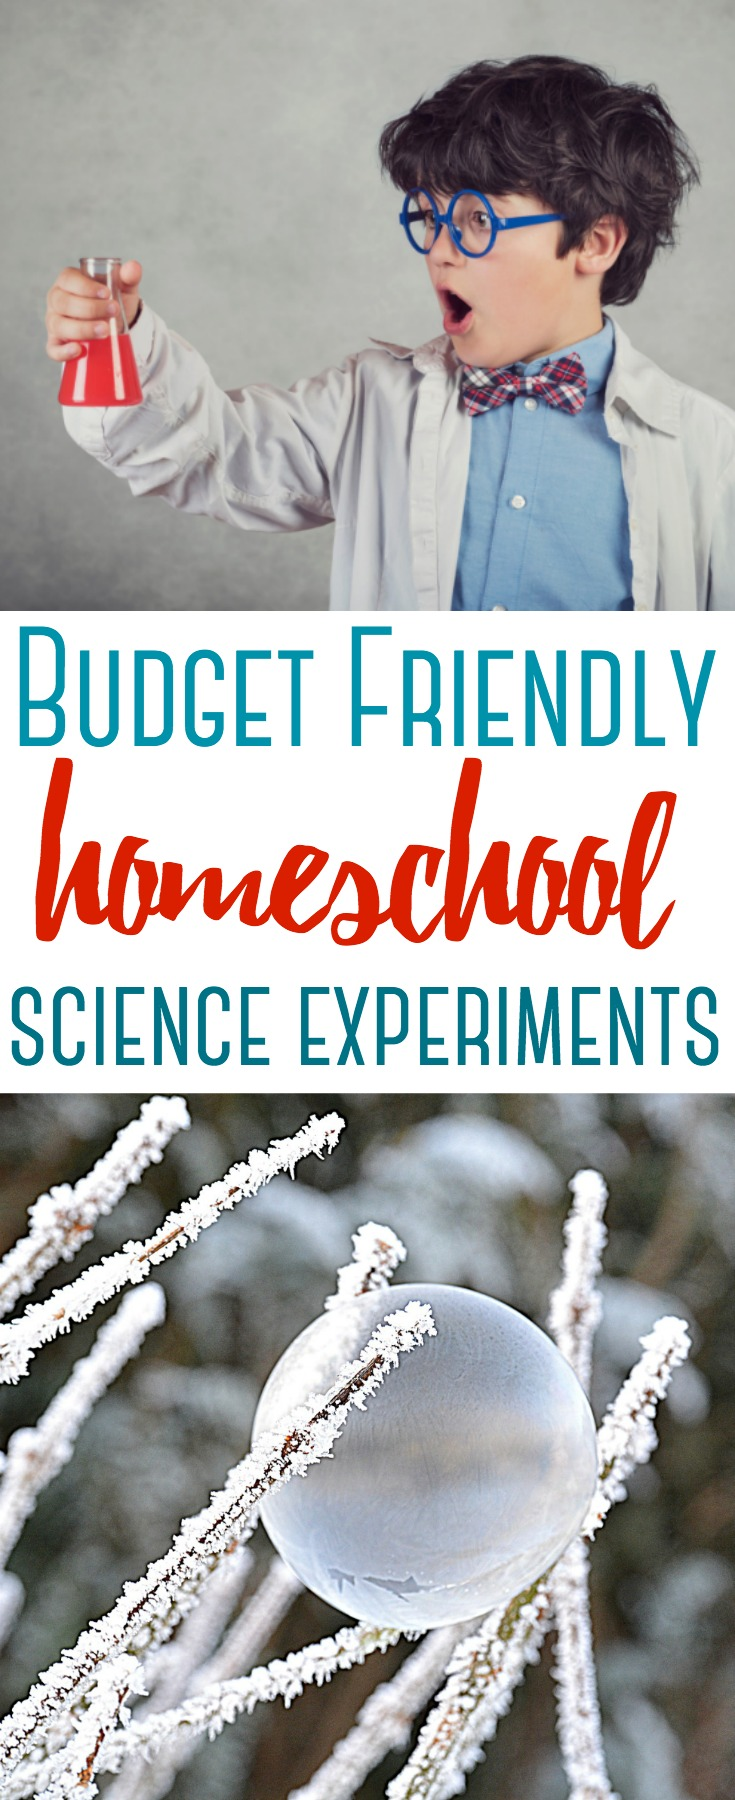 These science activities and projects will get your kids excited about learning science. Here are 7 Budget Friendly Homeschool Science Experiments!